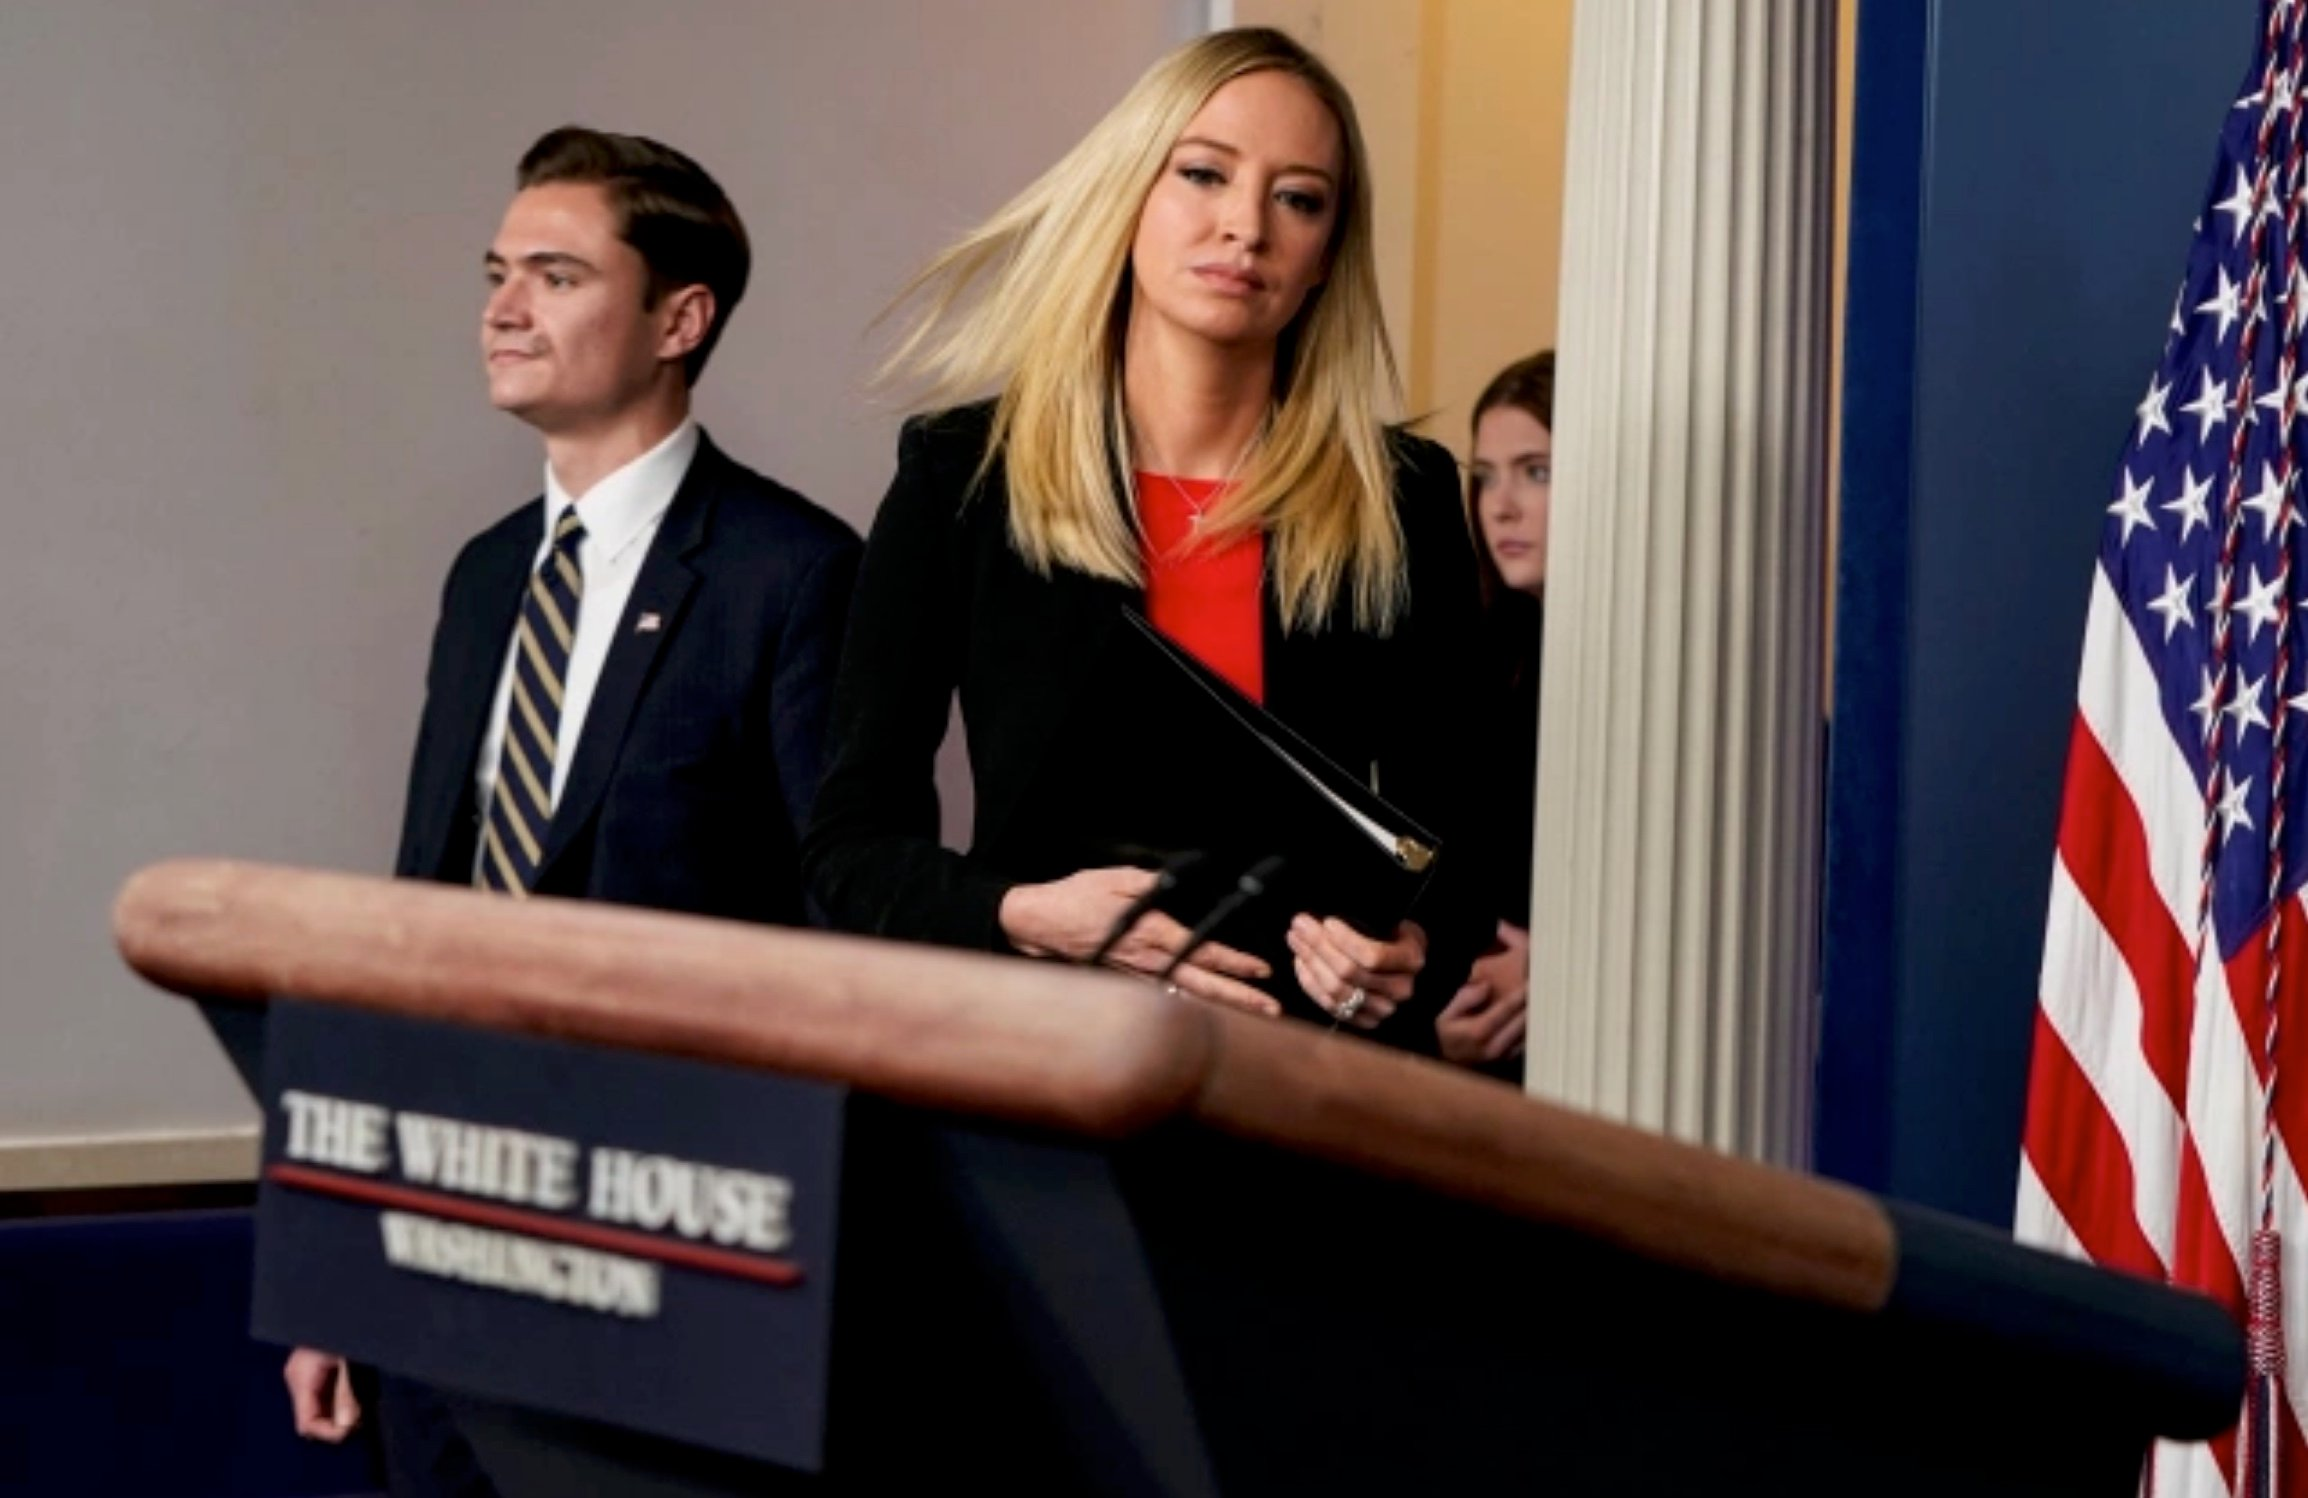 McEnany: Those Working In This Building Are Ensuring Orderly Transition Of Power; Time To Unite